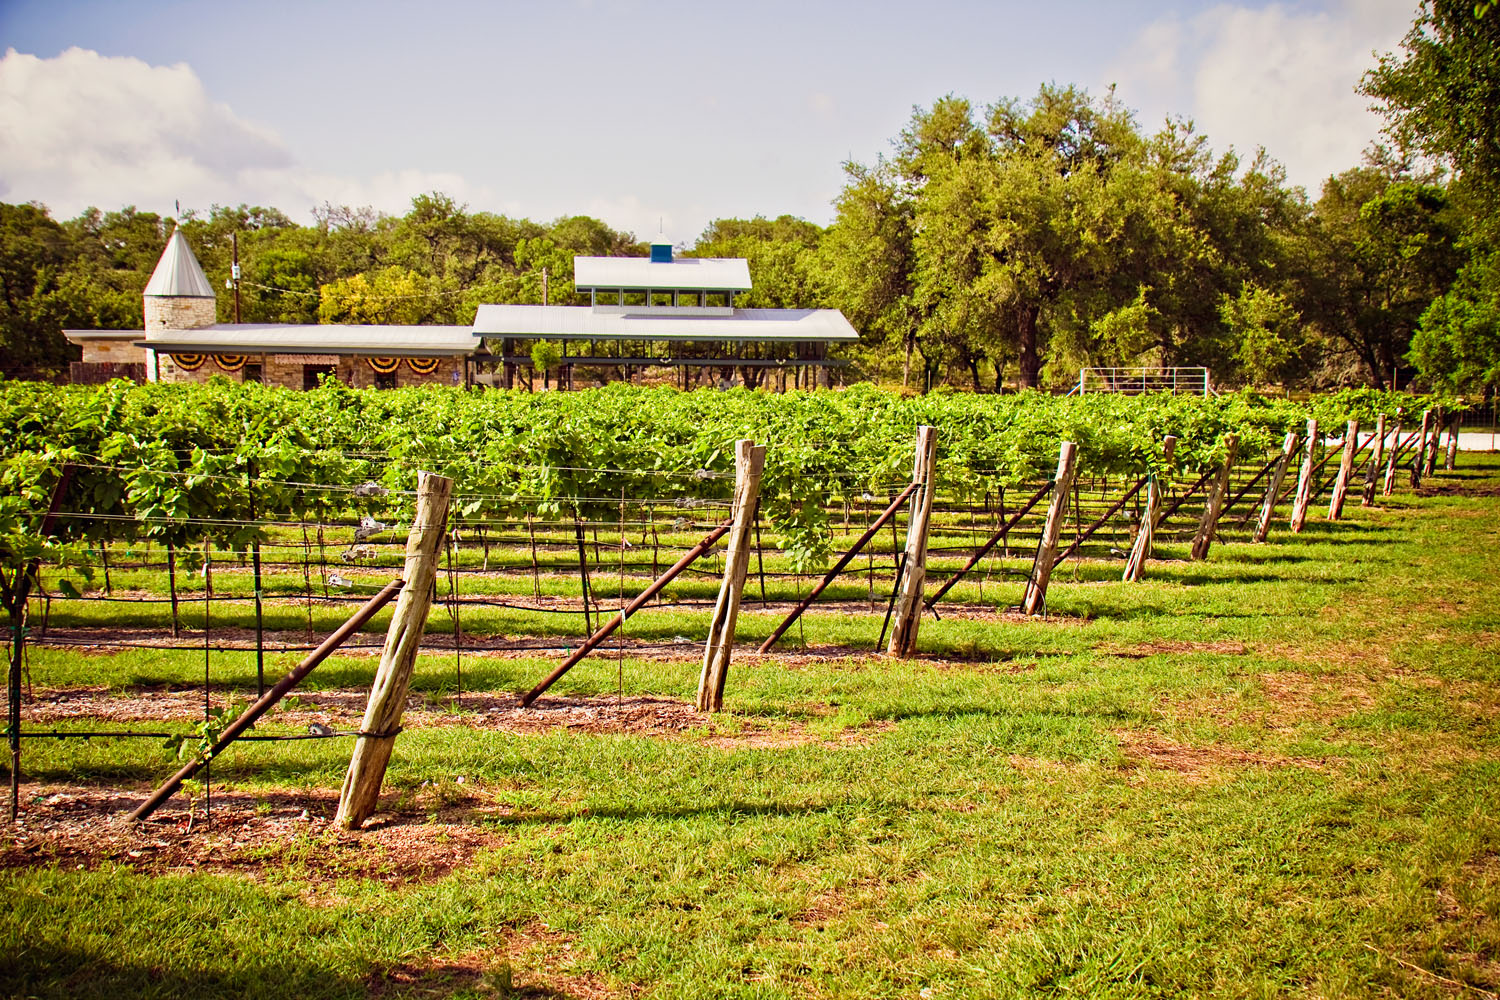 Texas Hill Country, United States vineyard